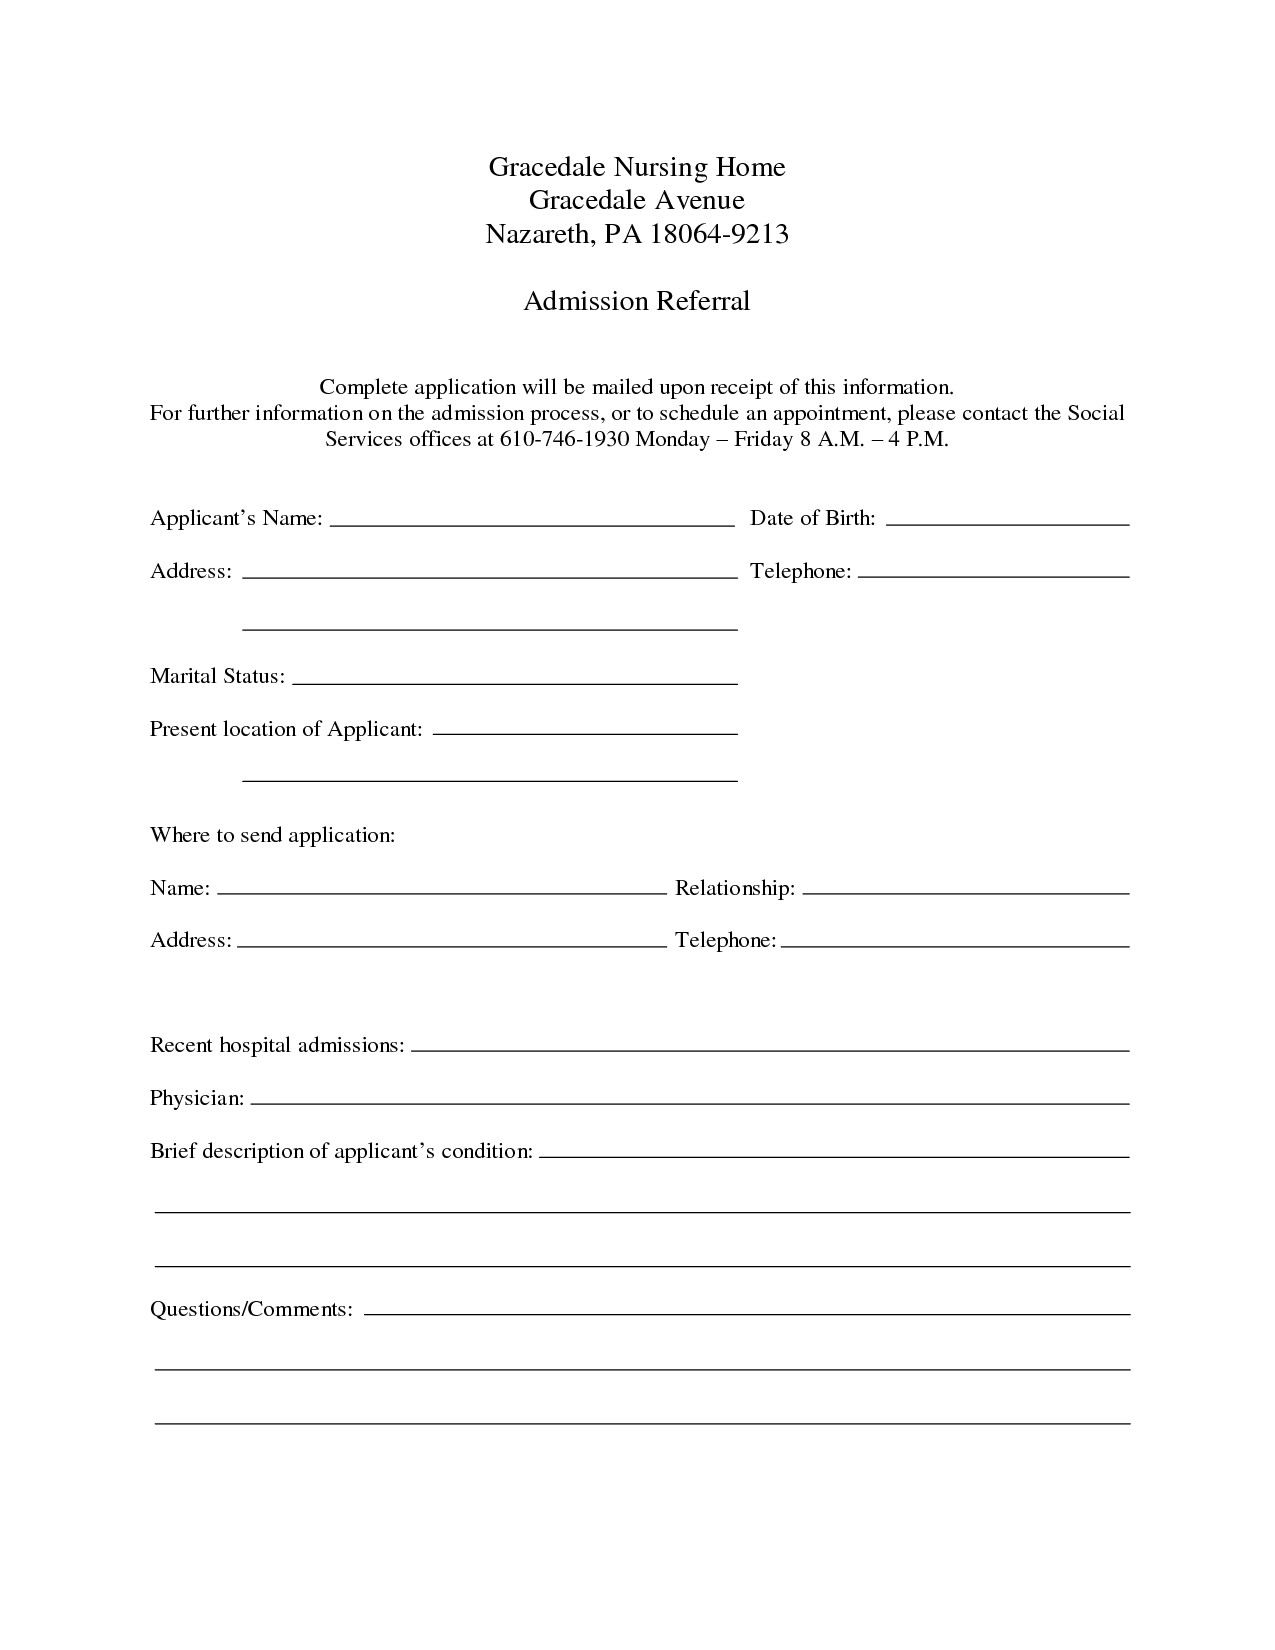 Patient Discharge form Template 9 Best Of Free Printable Hospital Discharge forms